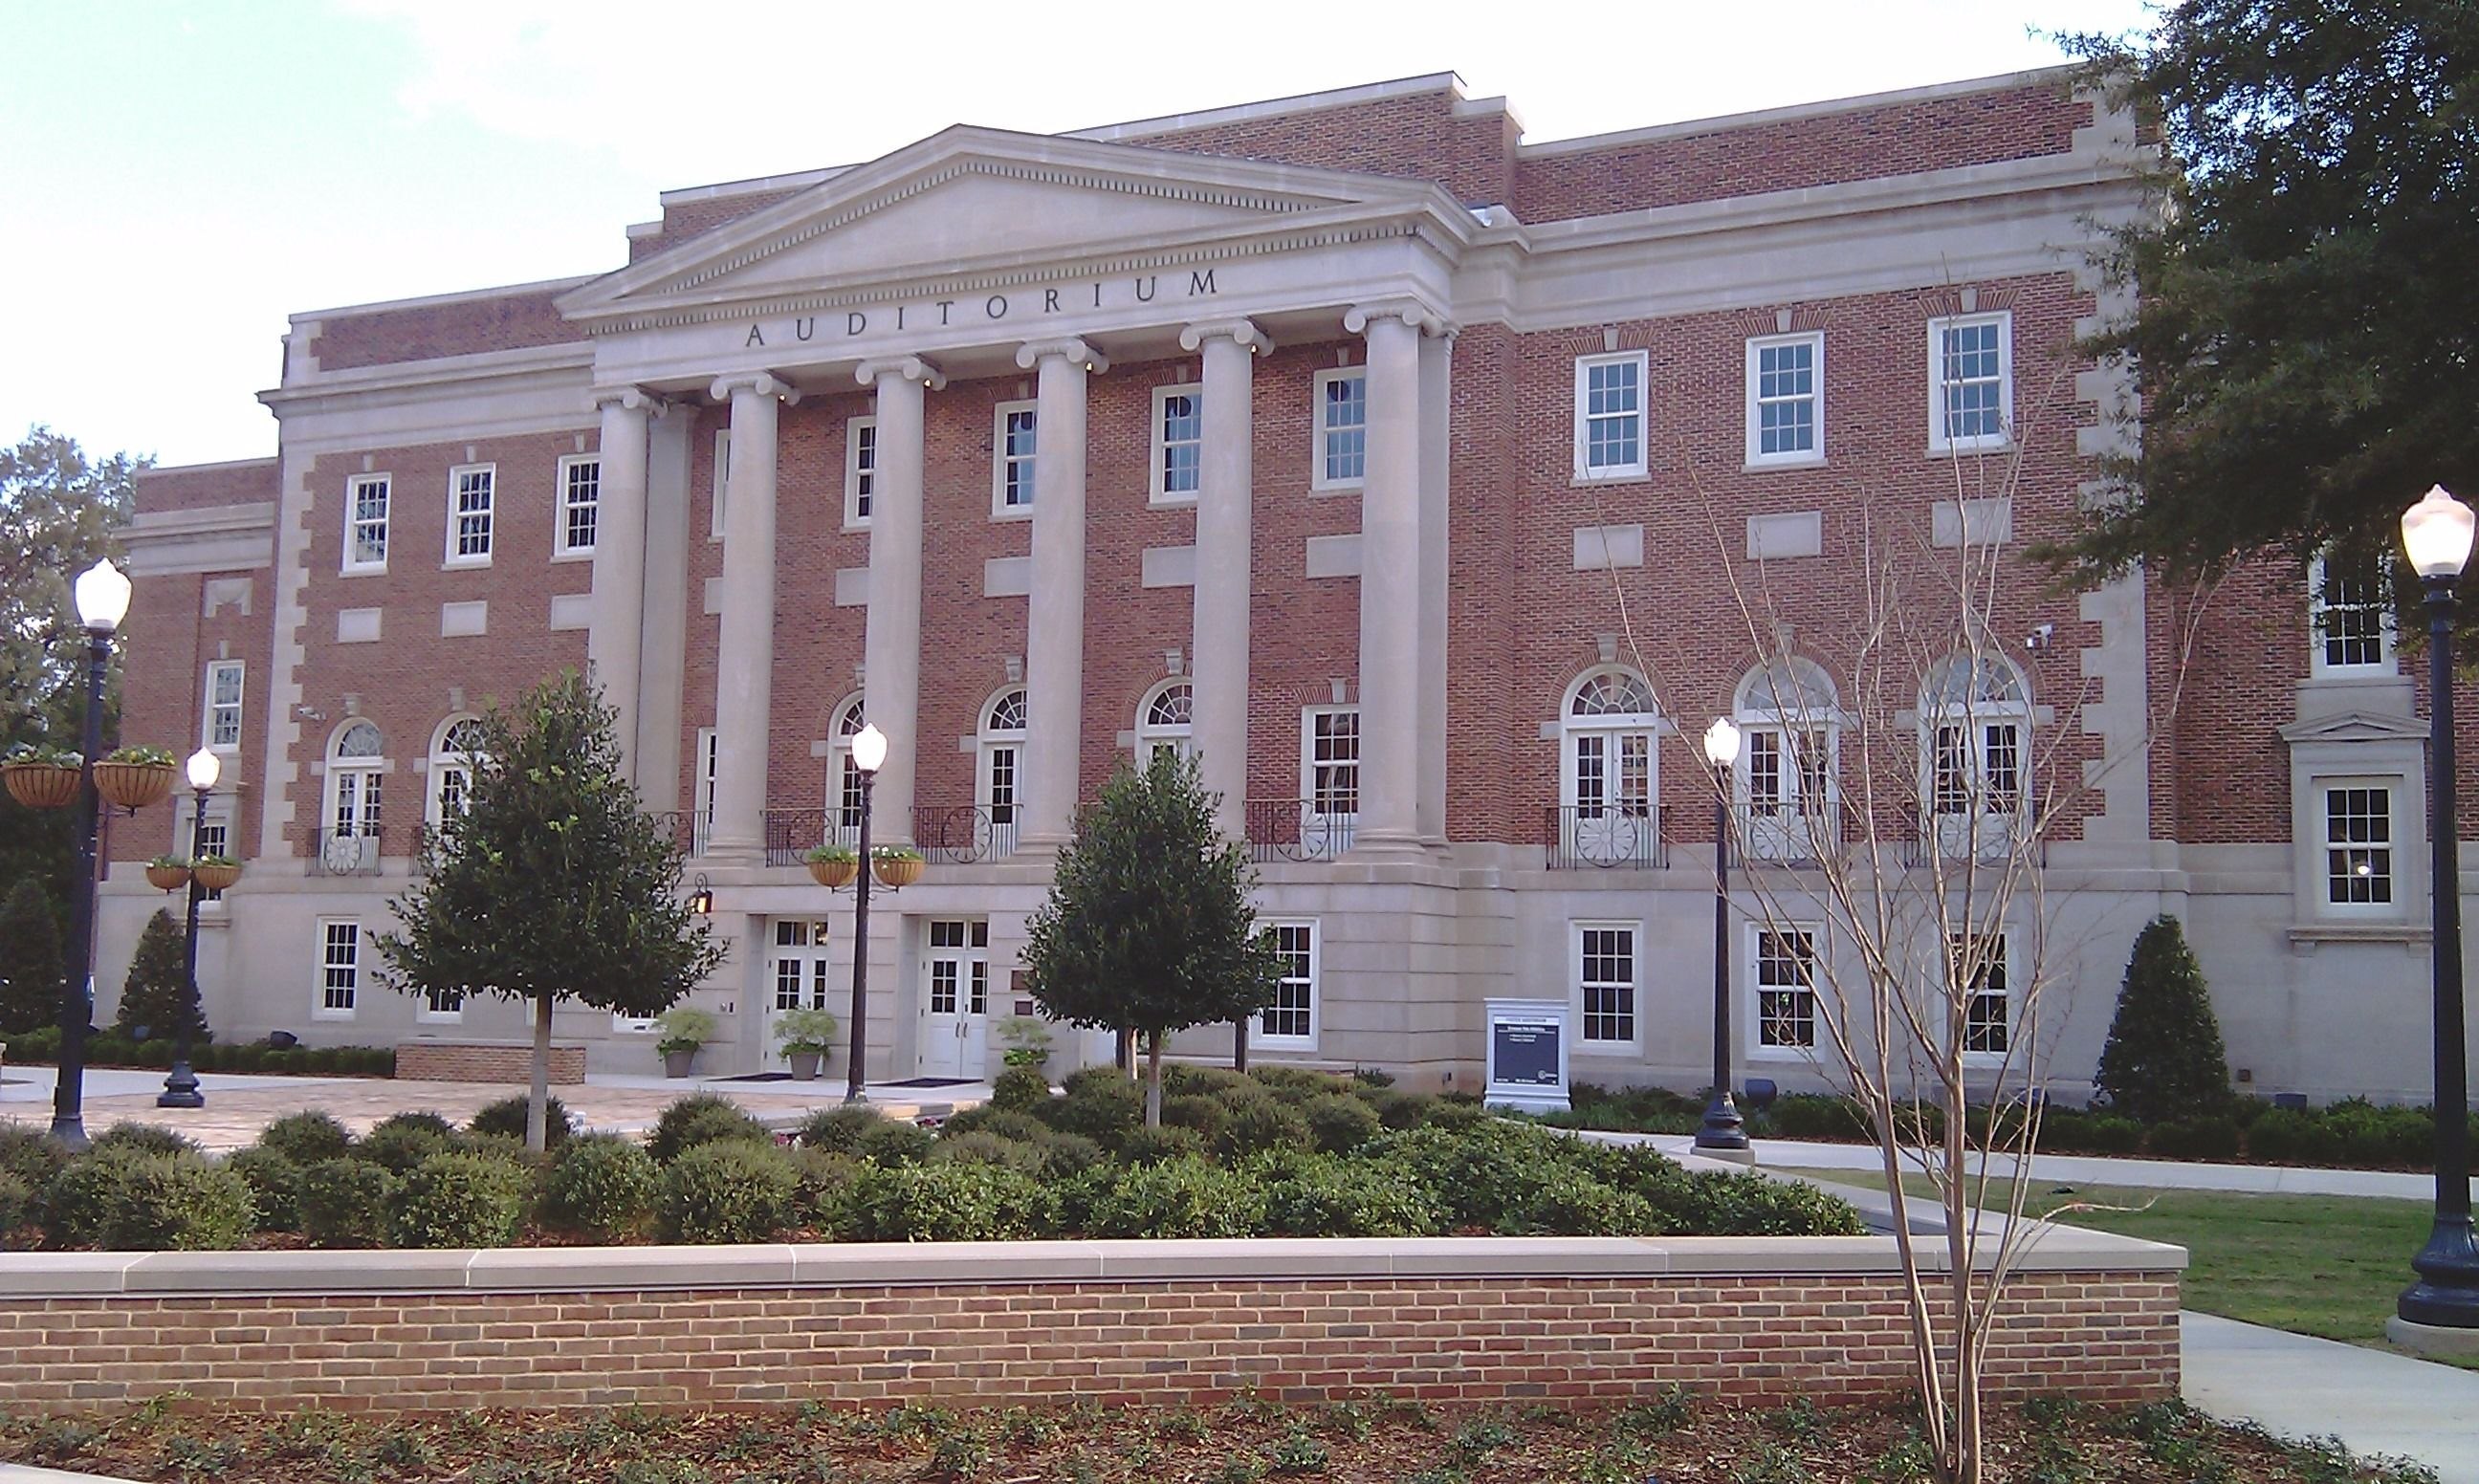 Foster Auditorium and Malone Hood Plaza on the campus of the University of Alabama in Tuscaloosa, Alabama.